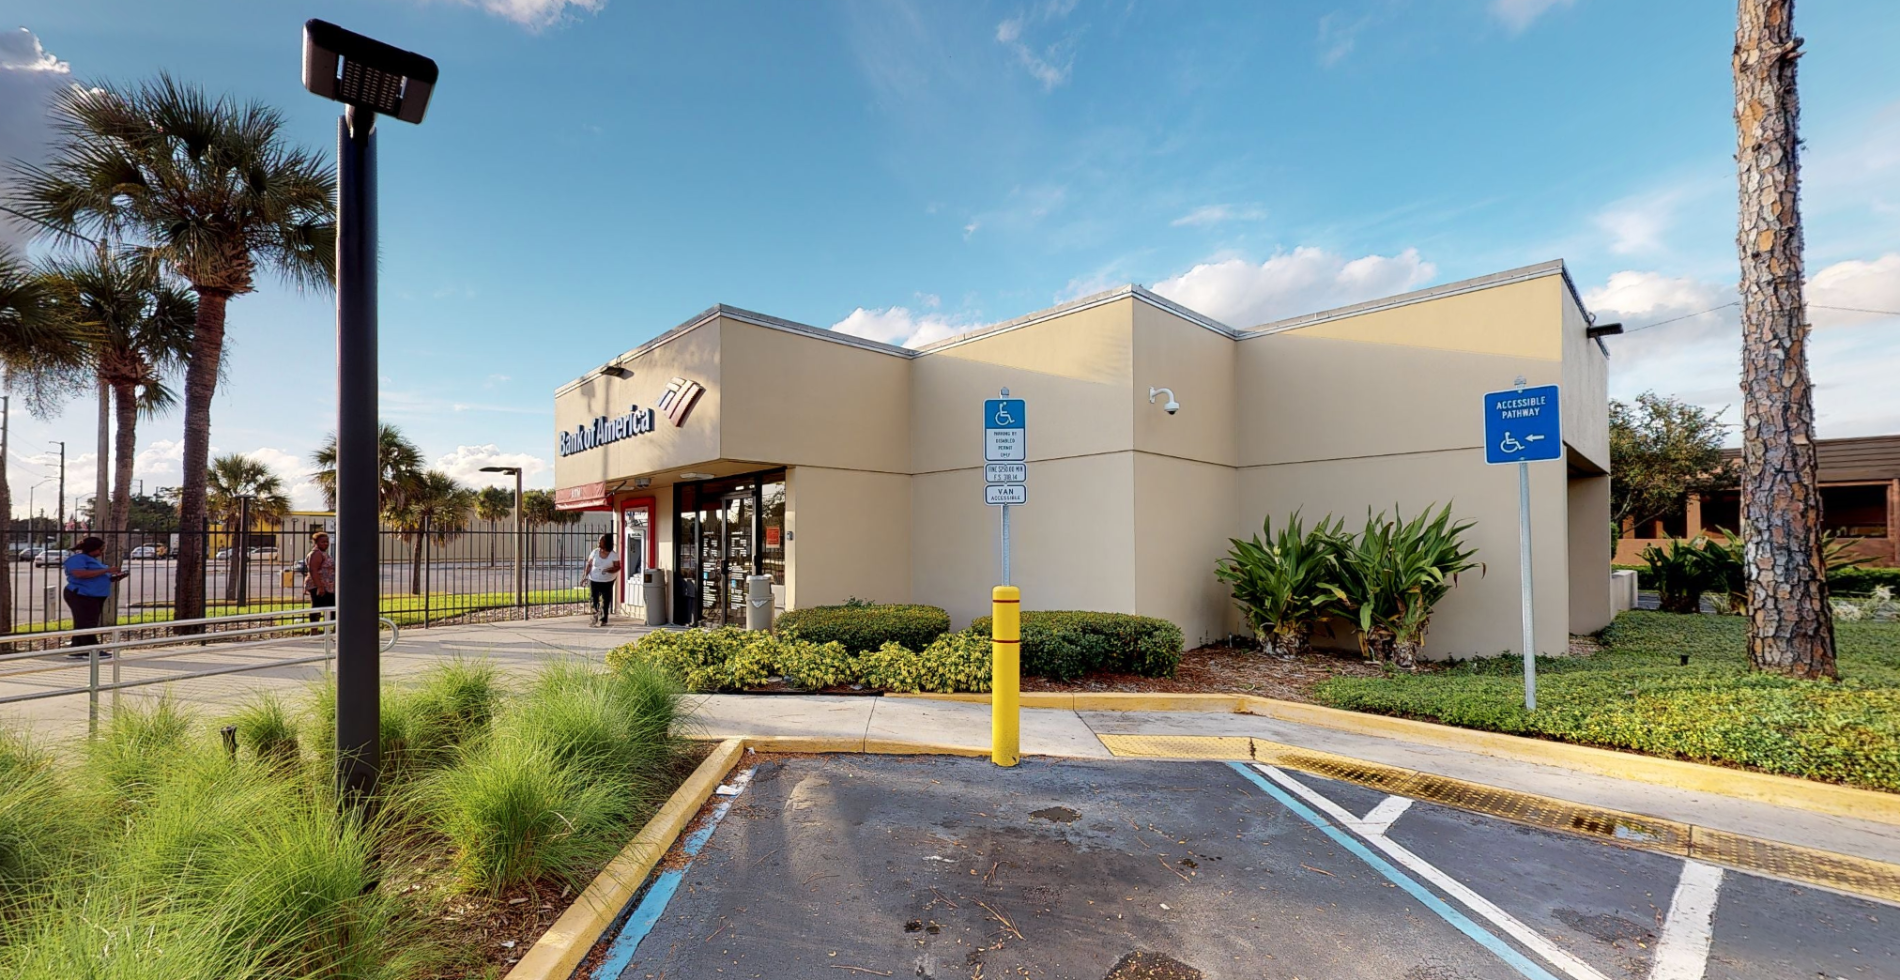 Bank of America financial center with drive-thru ATM and teller   7105 Silver Star Rd, Orlando, FL 32818